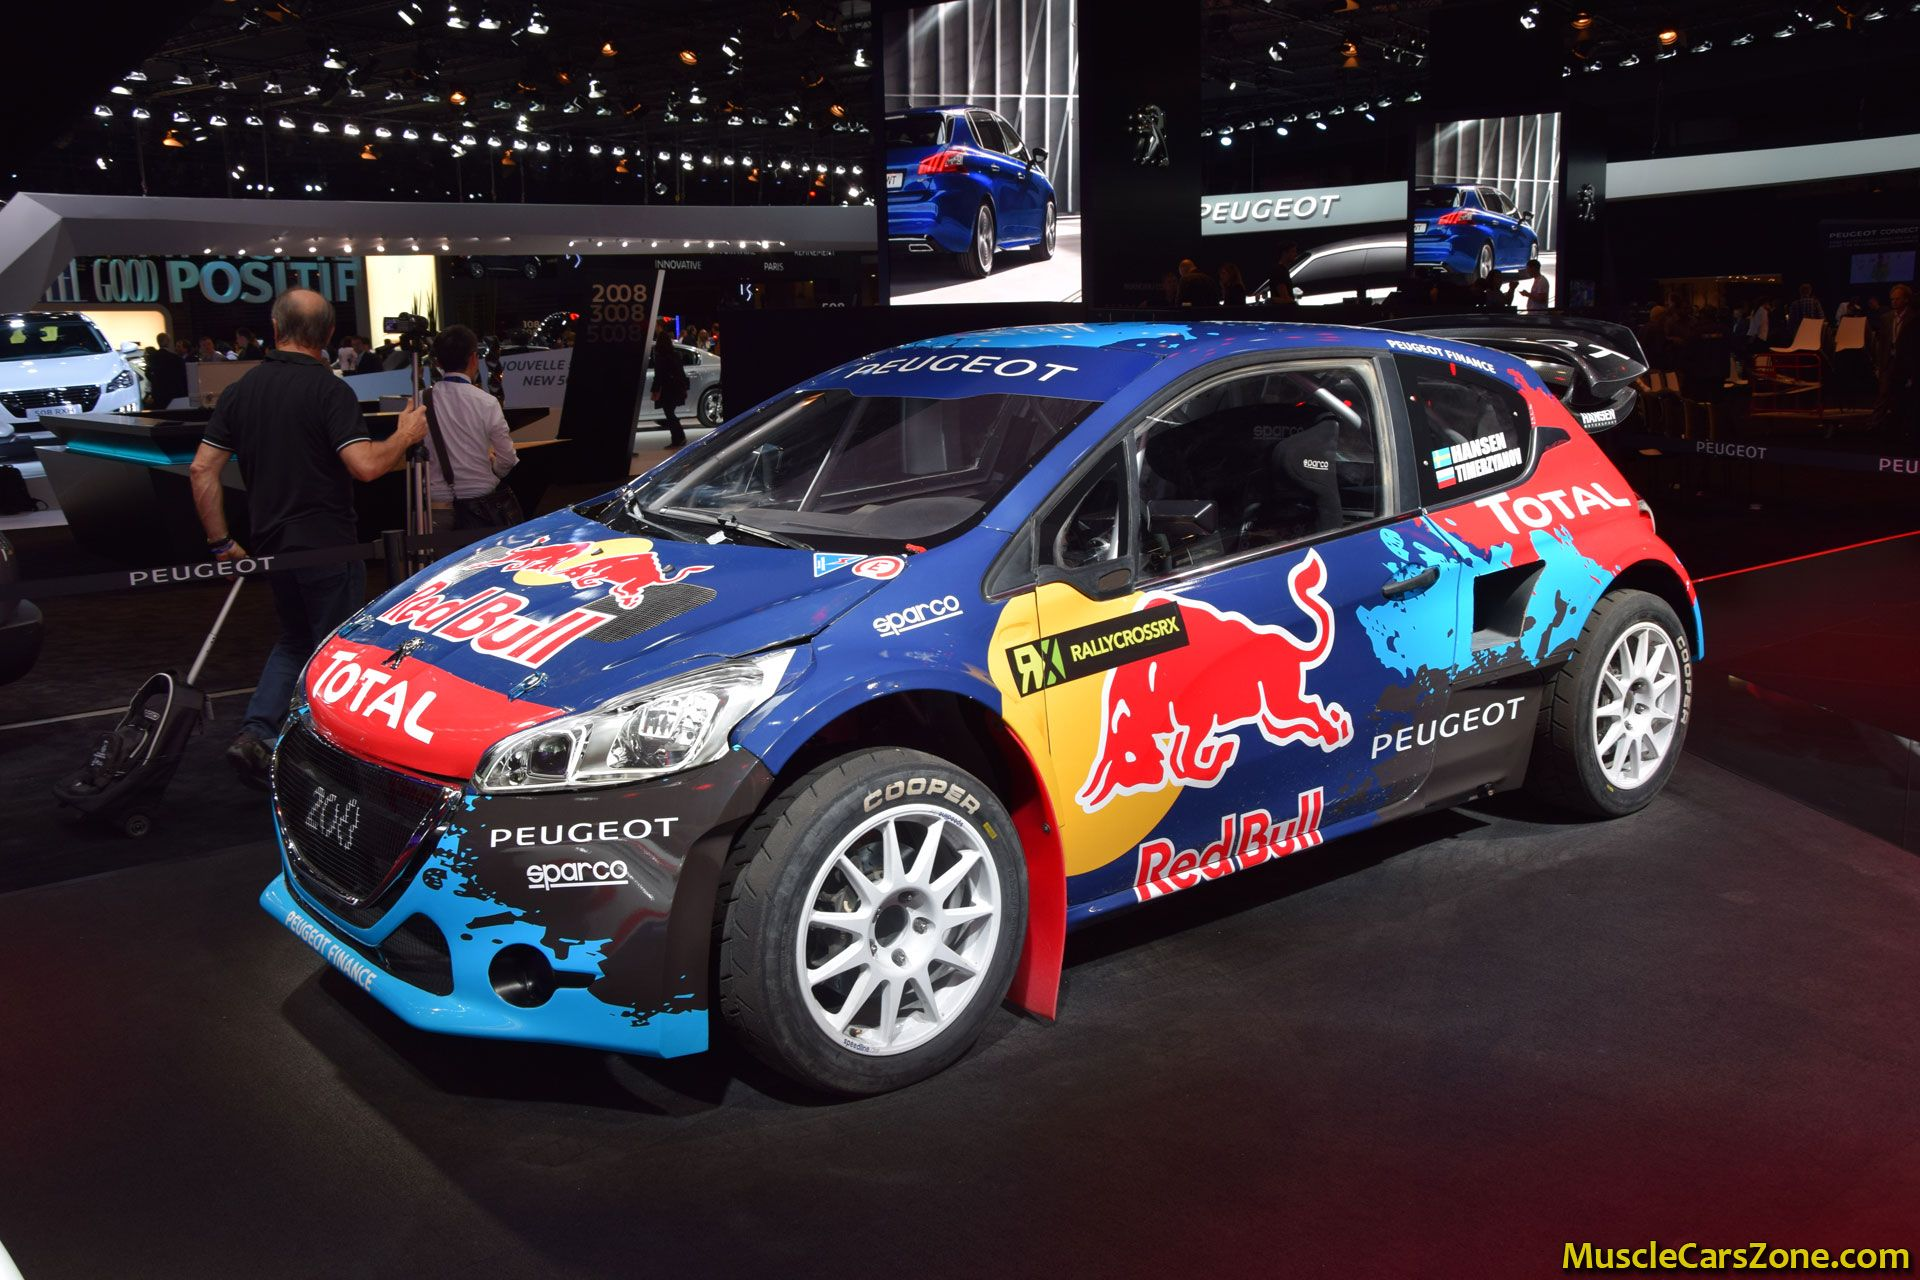 rally rc cars with Peugeot 208 Wrc 2014 Paris Motor Show 14 on Sstp 0307 Mopar 2003 Dodge Srt4 moreover Fiat 131 Abarth Rally likewise Peugeot 208 Wrc 2014 Paris Motor Show 14 likewise Rc5fcg in addition Watch.